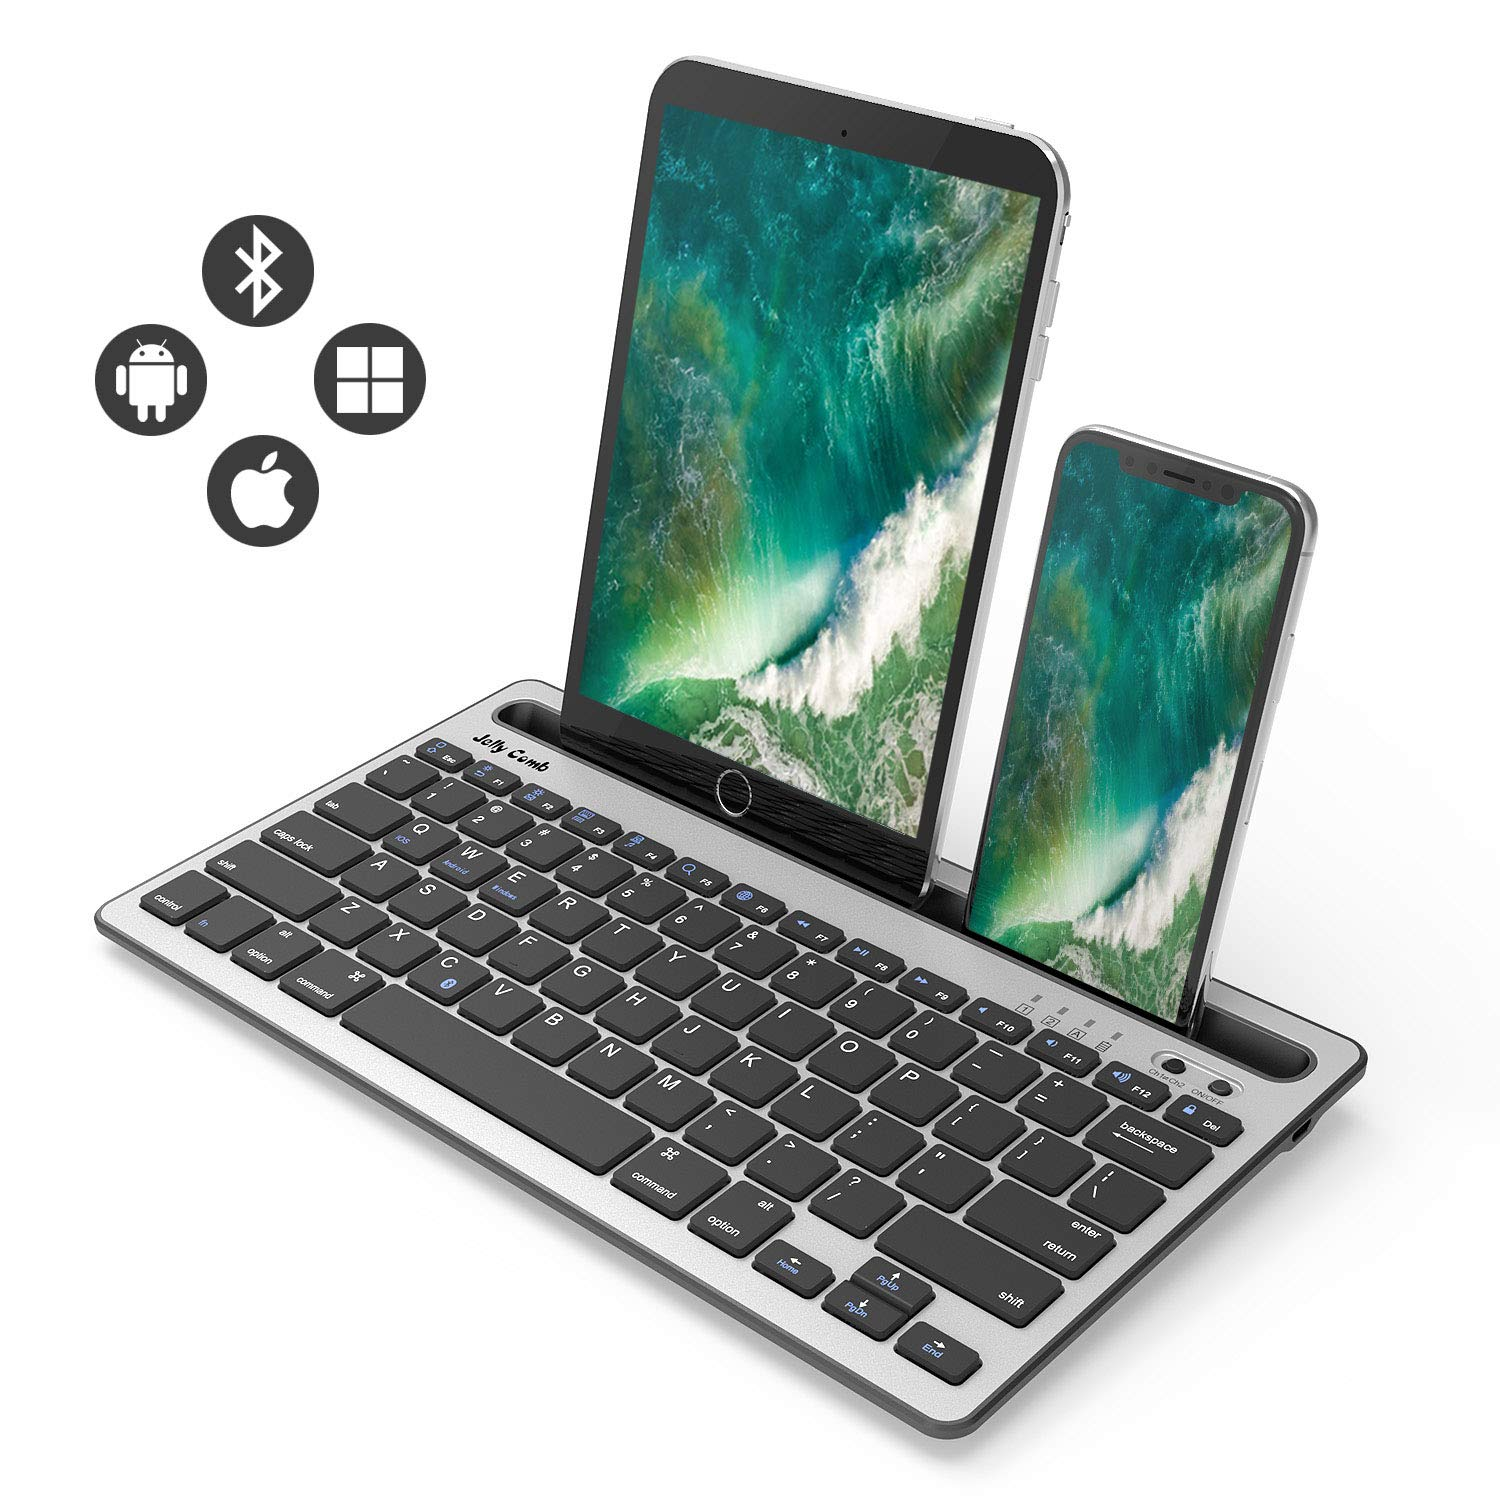 Bluetooth Keyboard, Jelly Comb BK230 Dual Channel Multi-Device Universal Wireless Bluetooth Rechargeable Keyboard with Sturdy Stand for Tablet Smartphone PC Windows Android iOS Mac (Black and Silver)